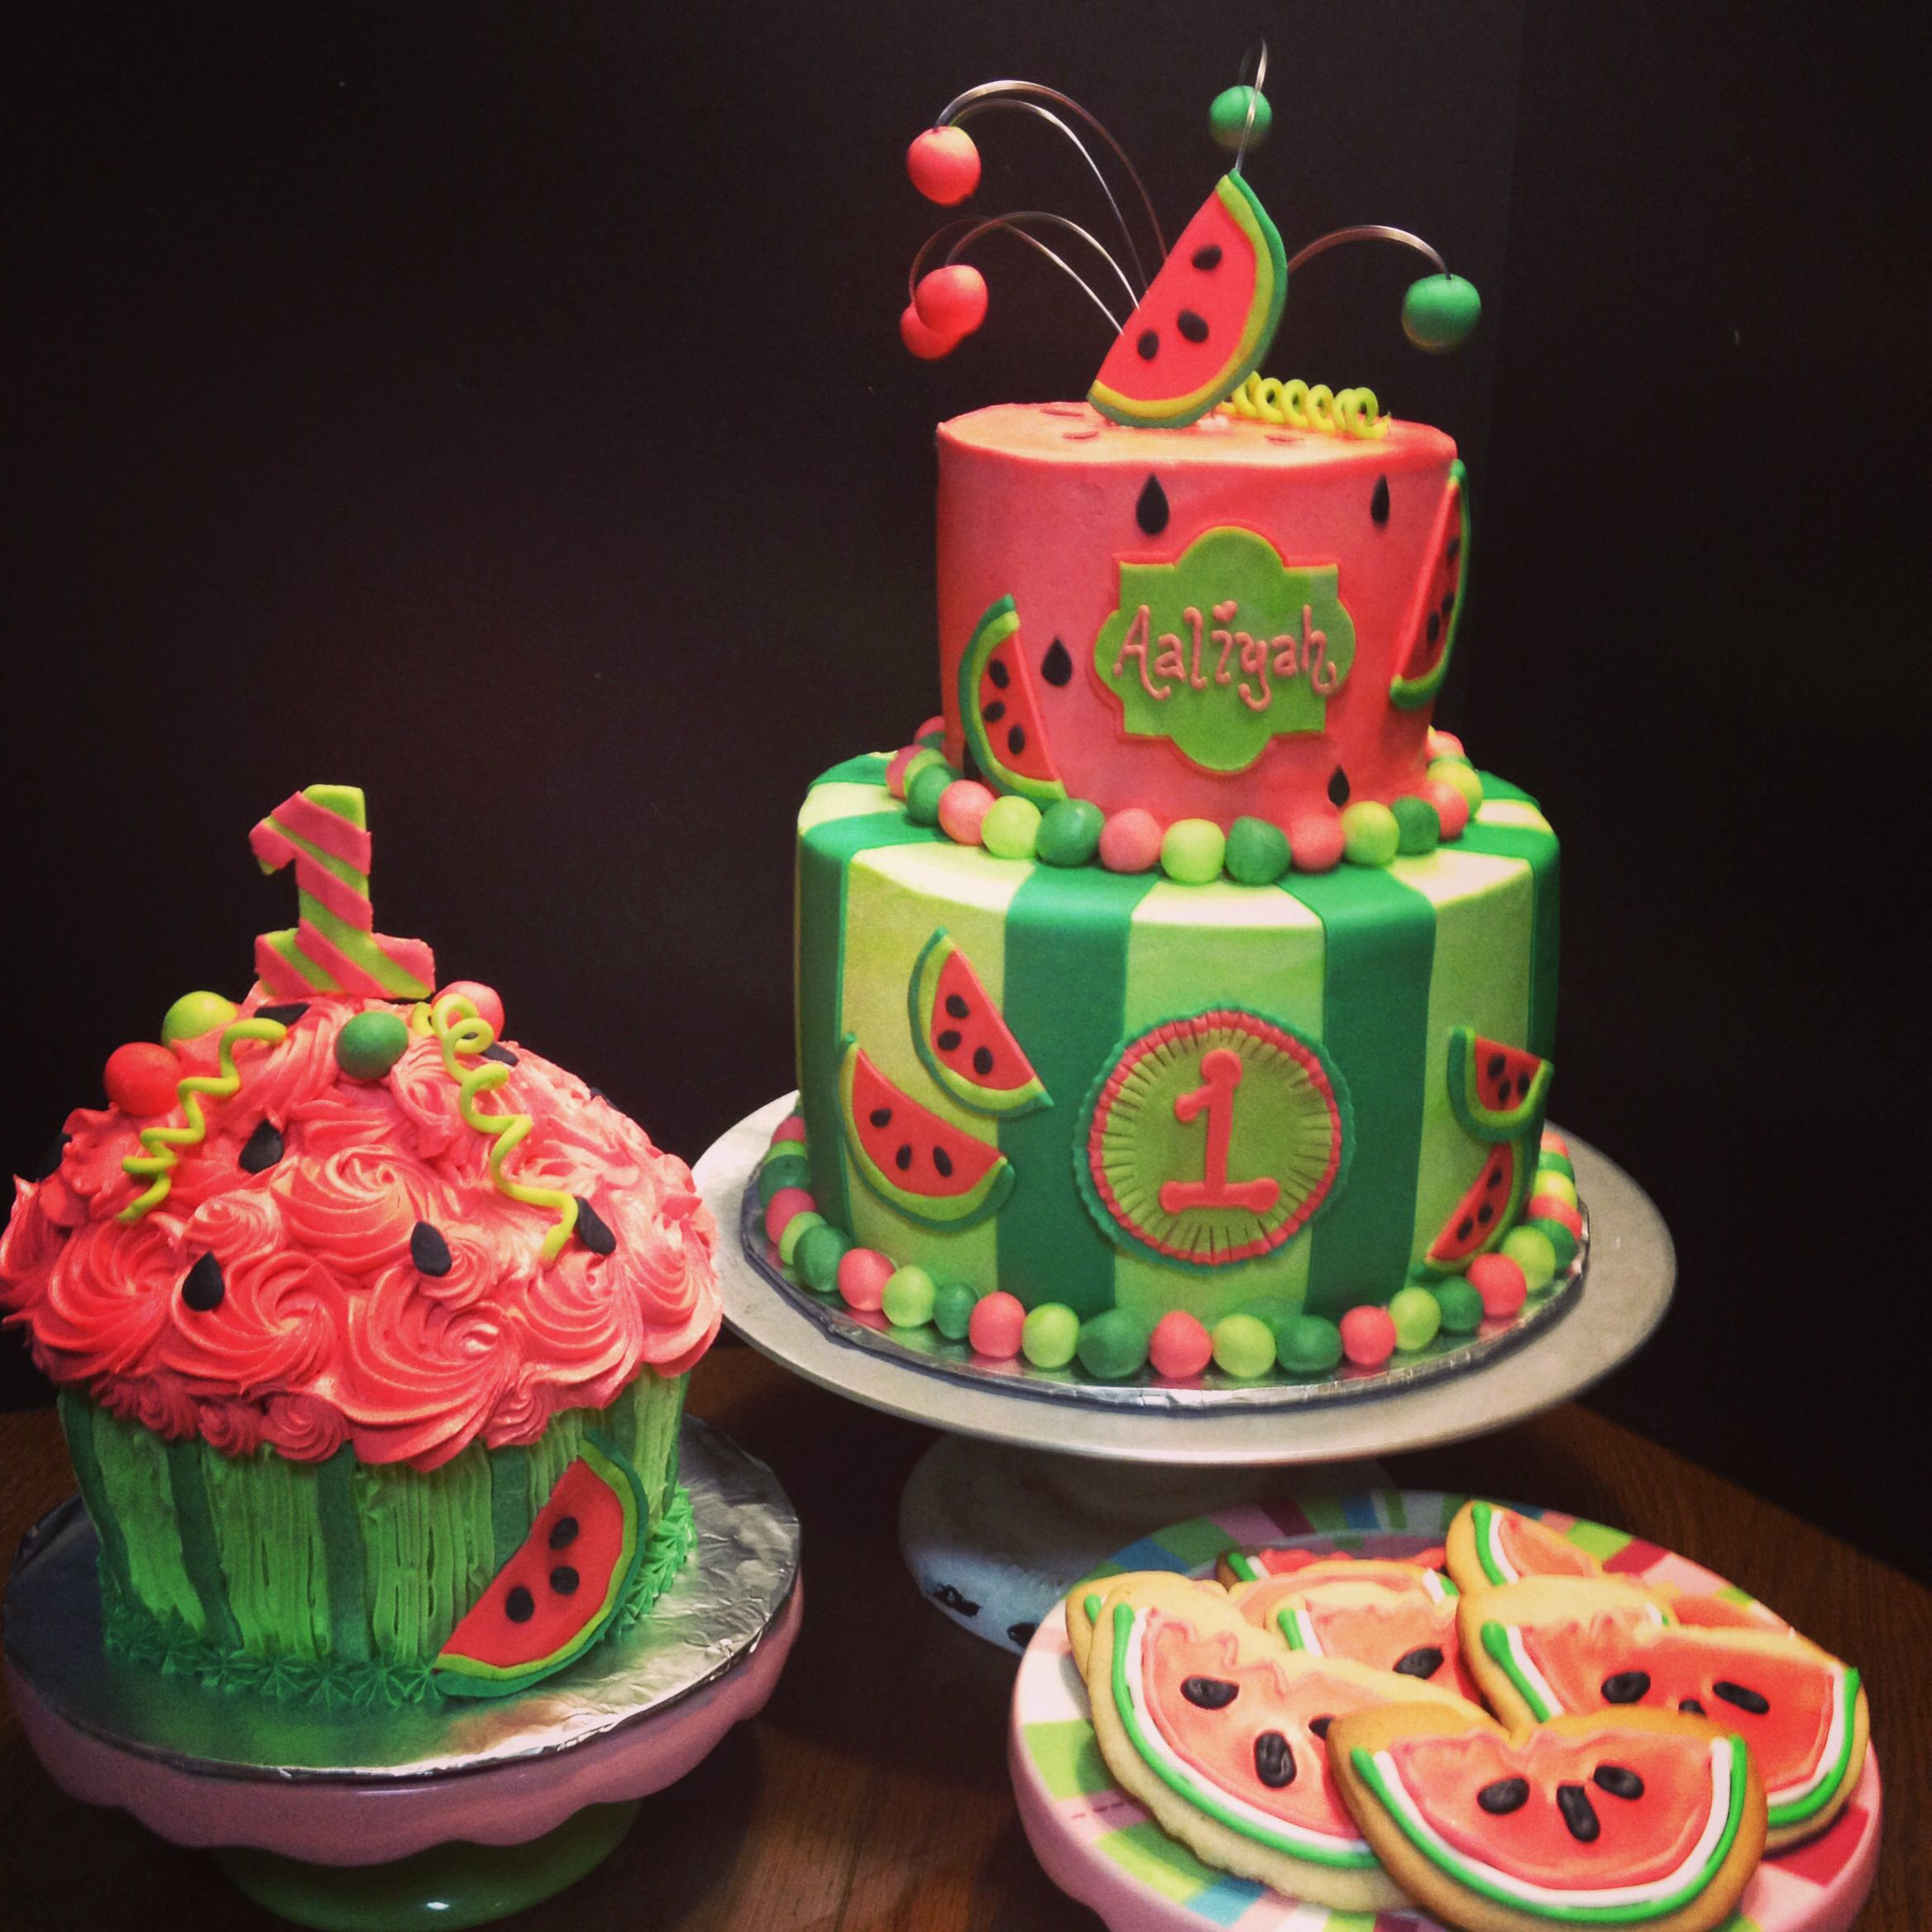 Incredible Watermelon Theme Party Www Ohdarlingcupcakery Com Watermelon Funny Birthday Cards Online Inifofree Goldxyz